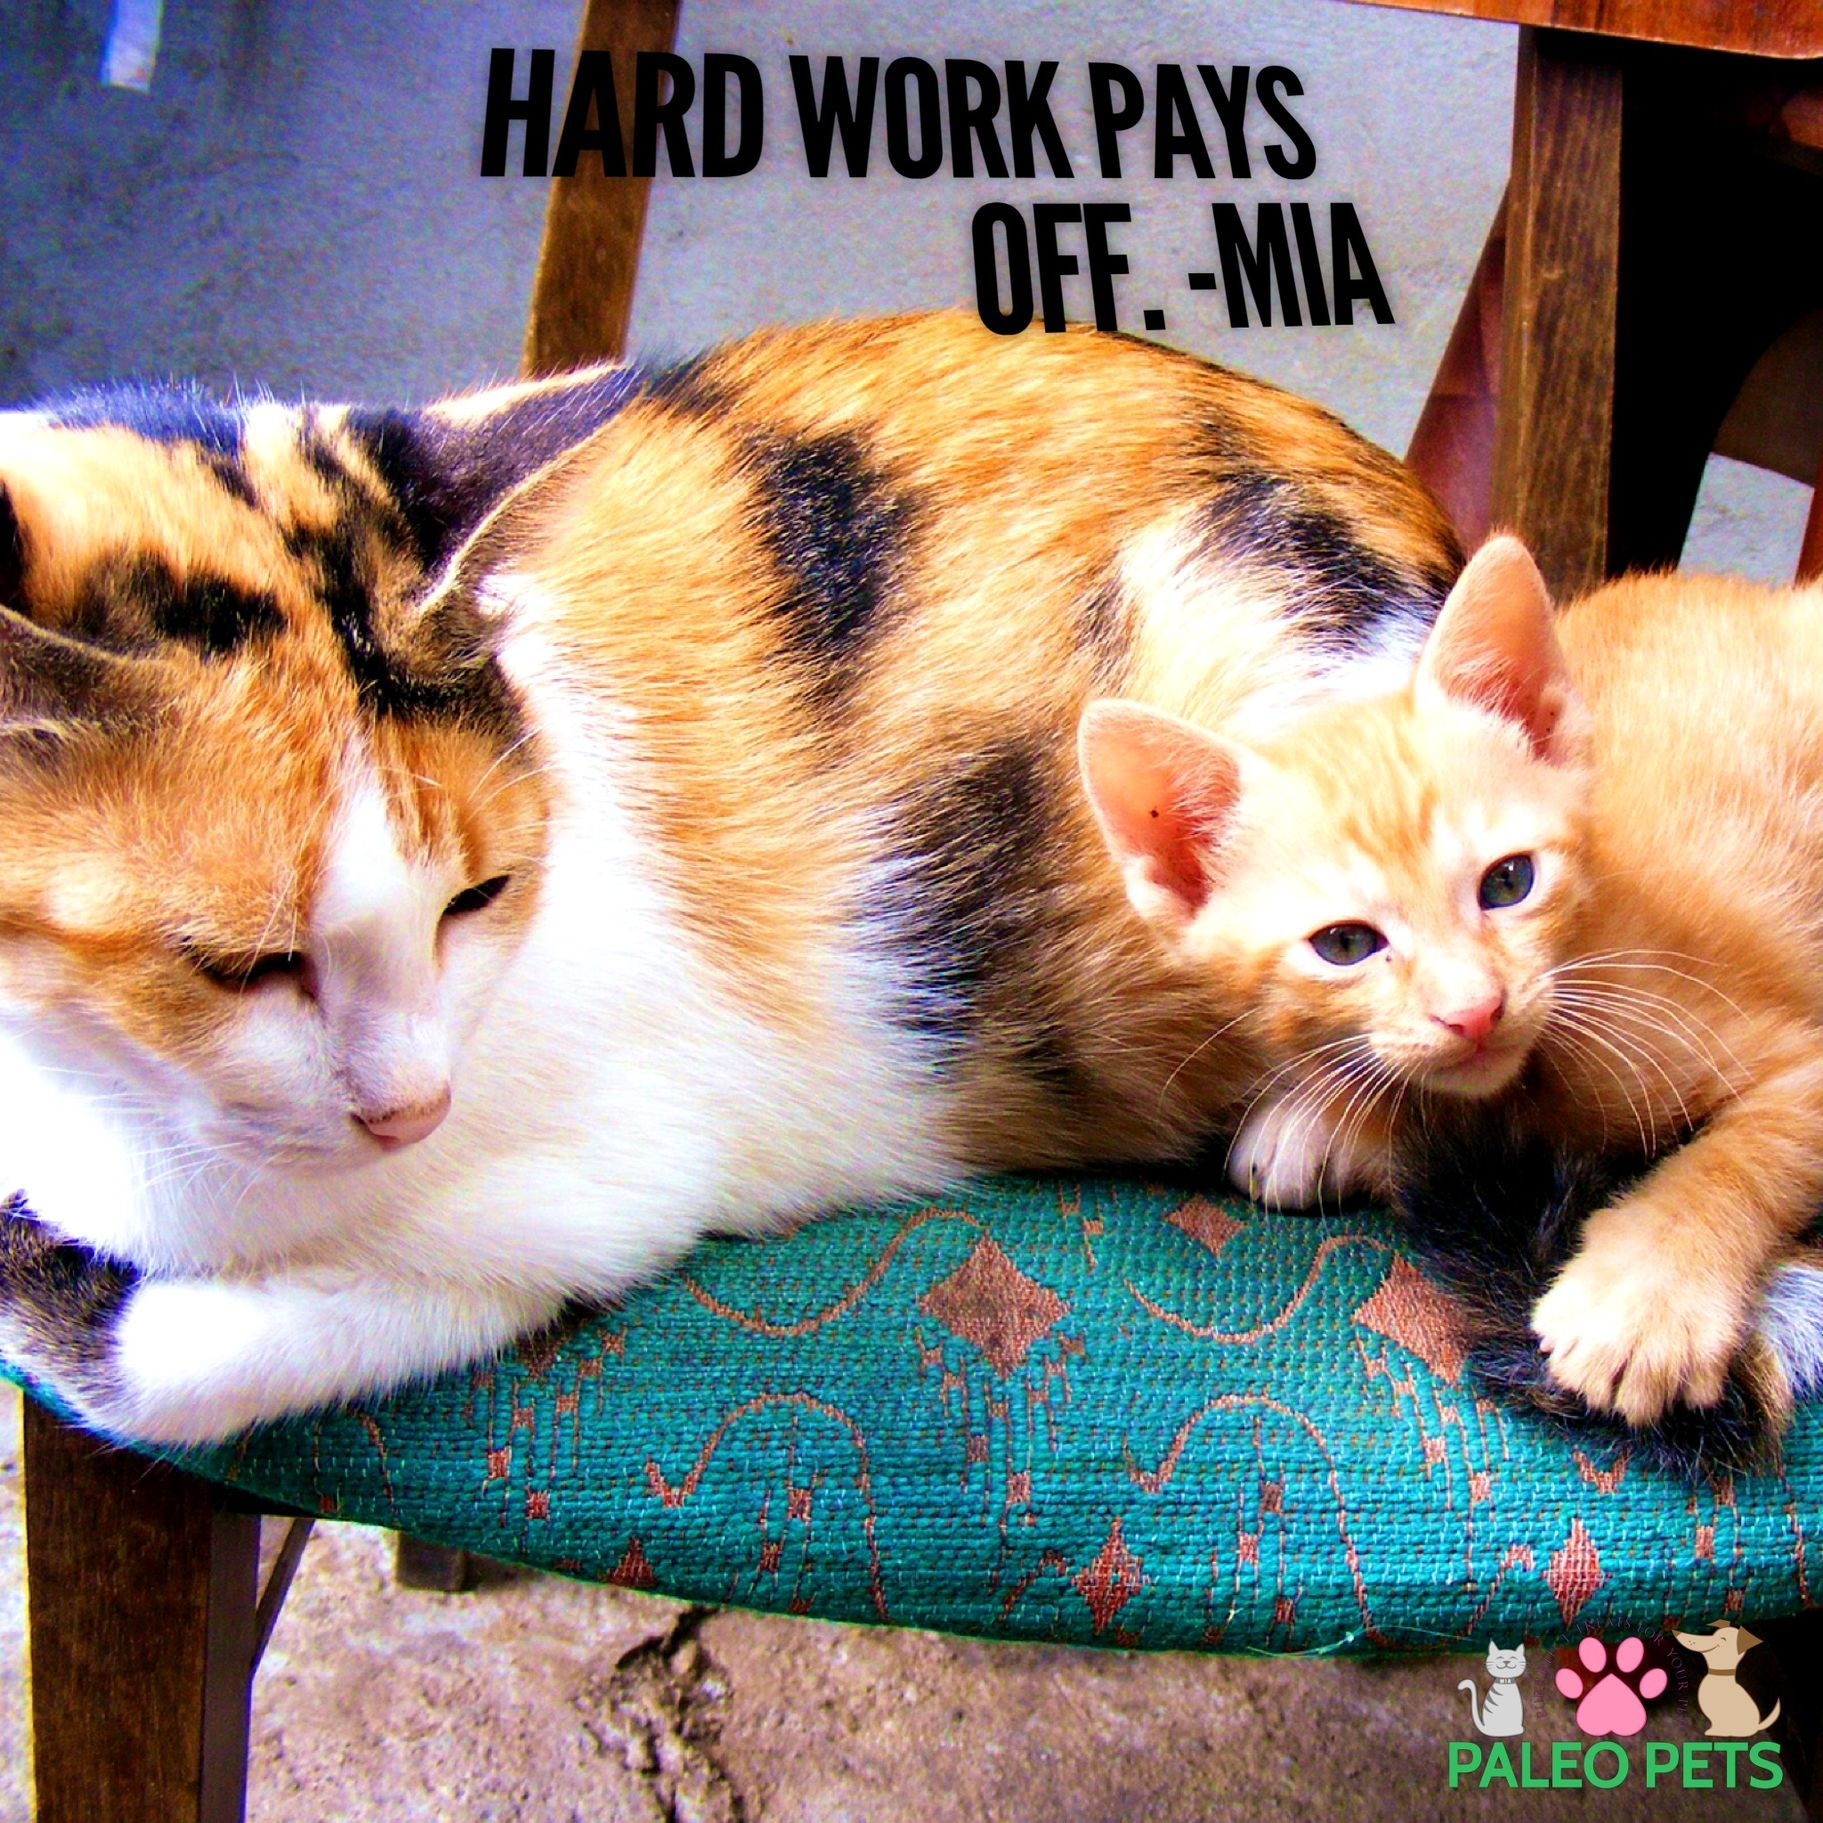 Happy Tuesday. Hard work pays off! 😸 Cats Pets Animals